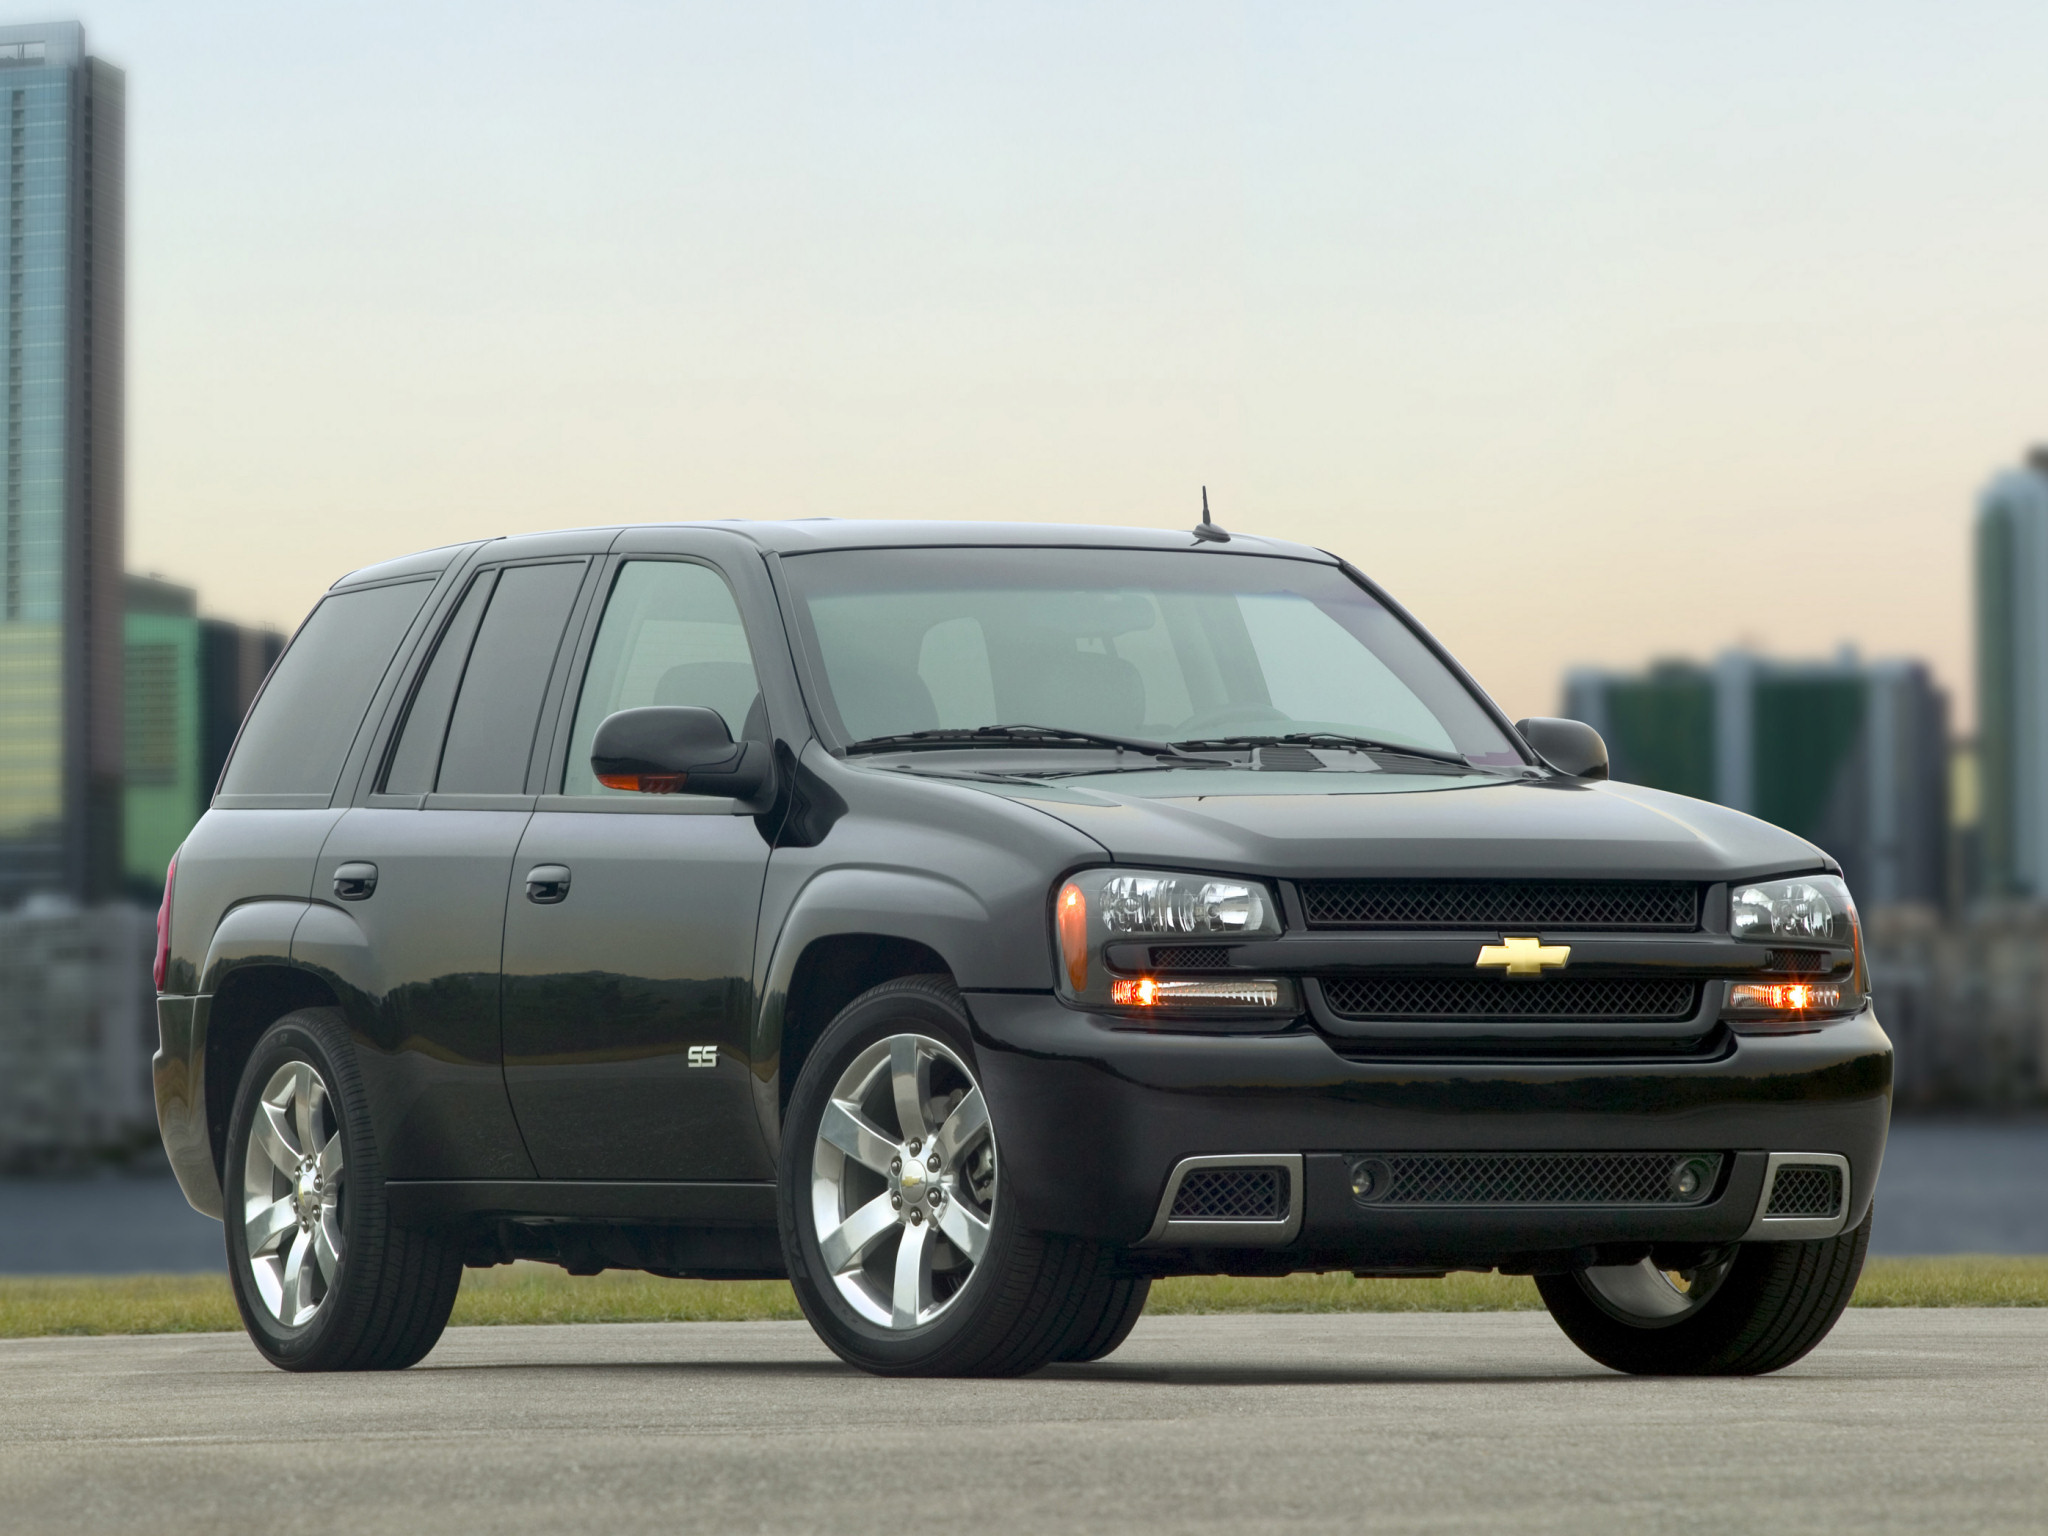 2008 Chevrolet Trailblazer #3